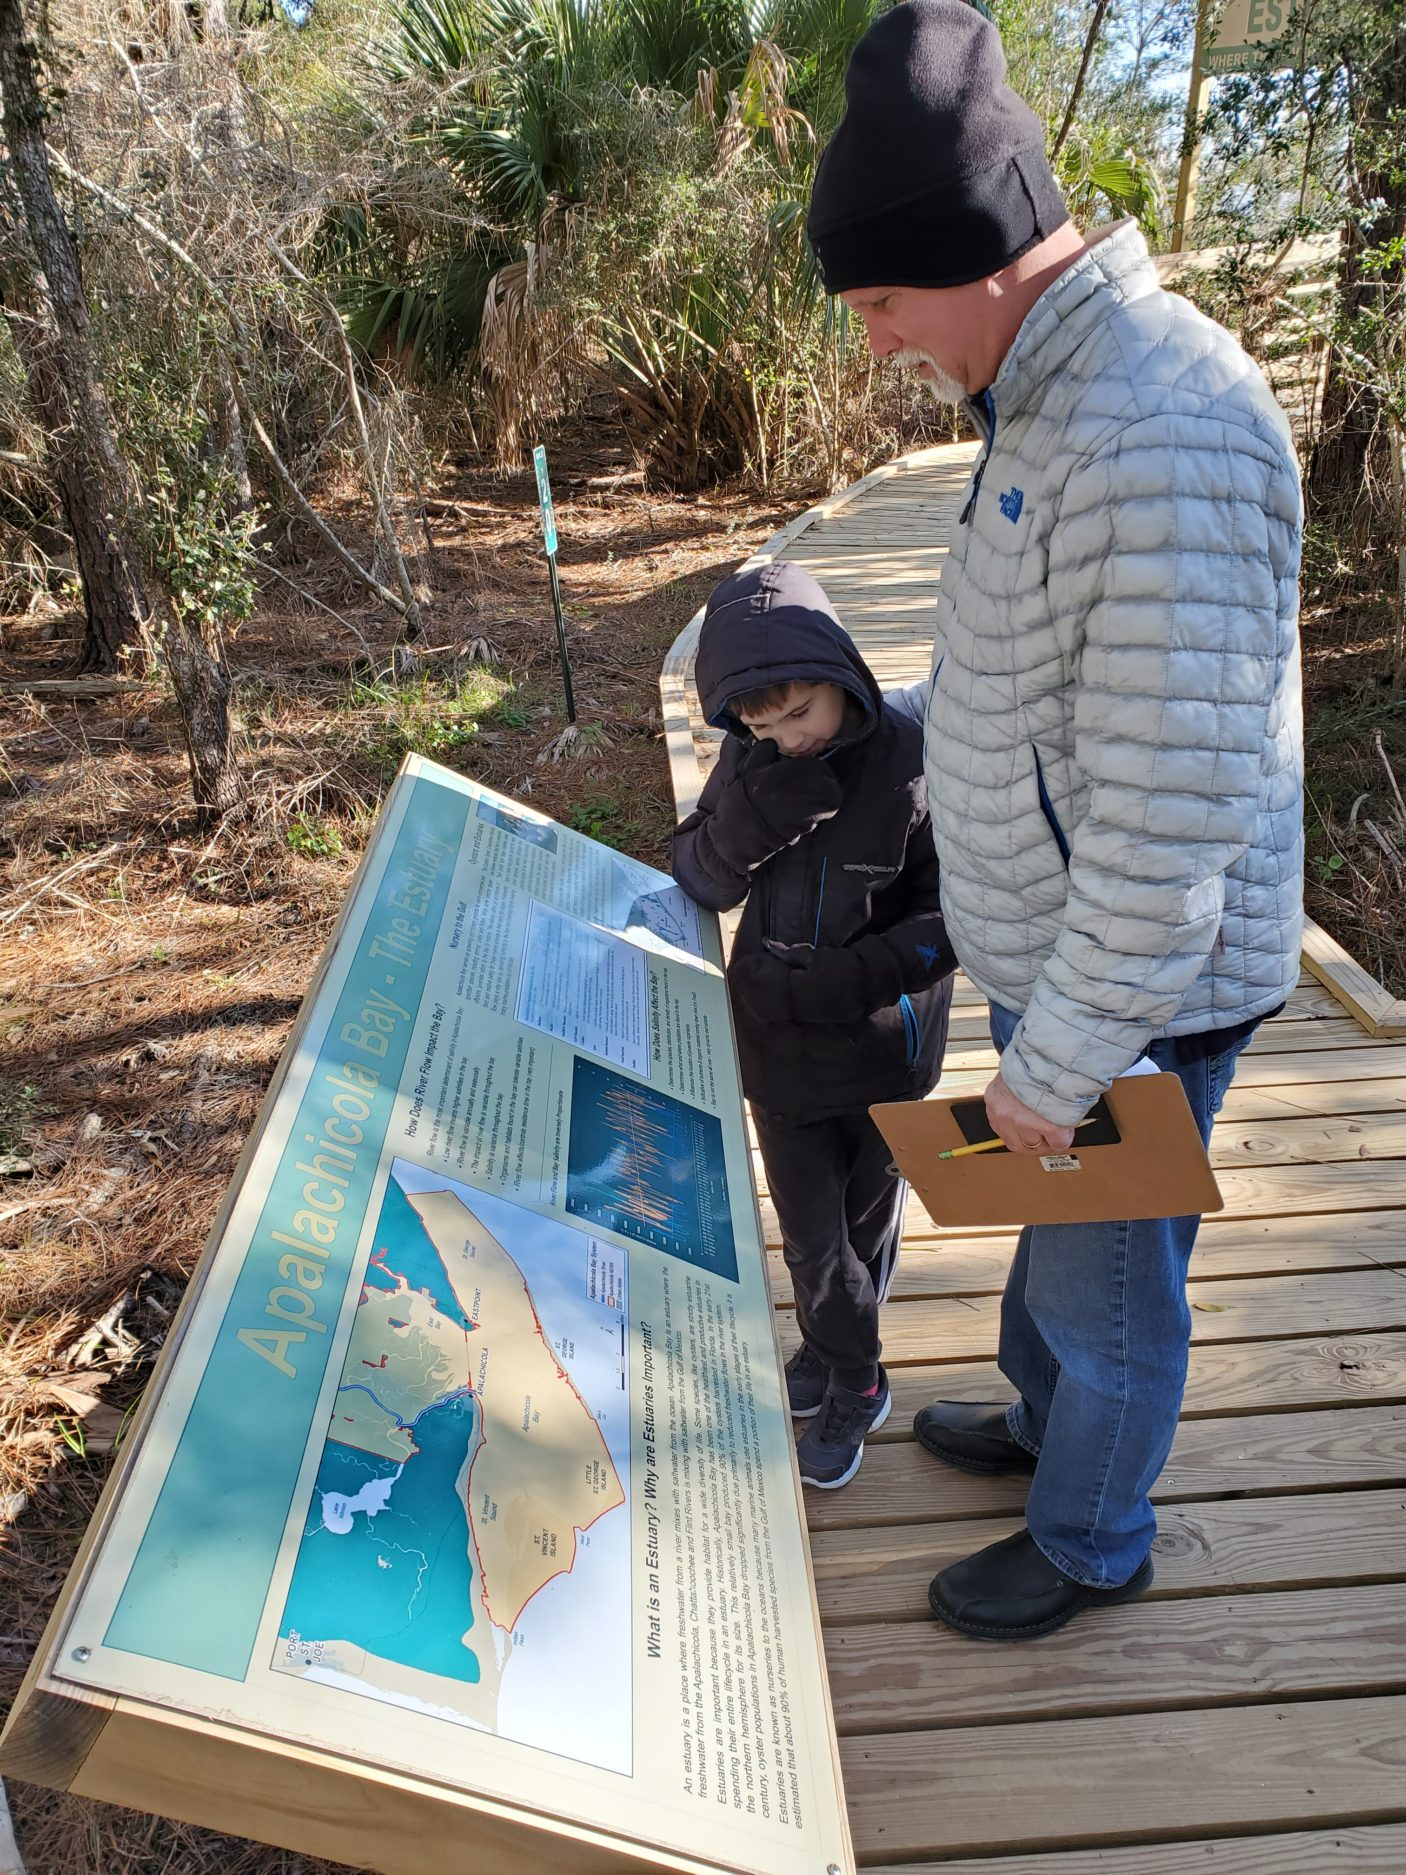 The new Watershed Walk is designed as a model for visitors to travel downstream from the headwaters of the Chattahoochee and Flint Rivers to the mouth of the Apalachicola River.